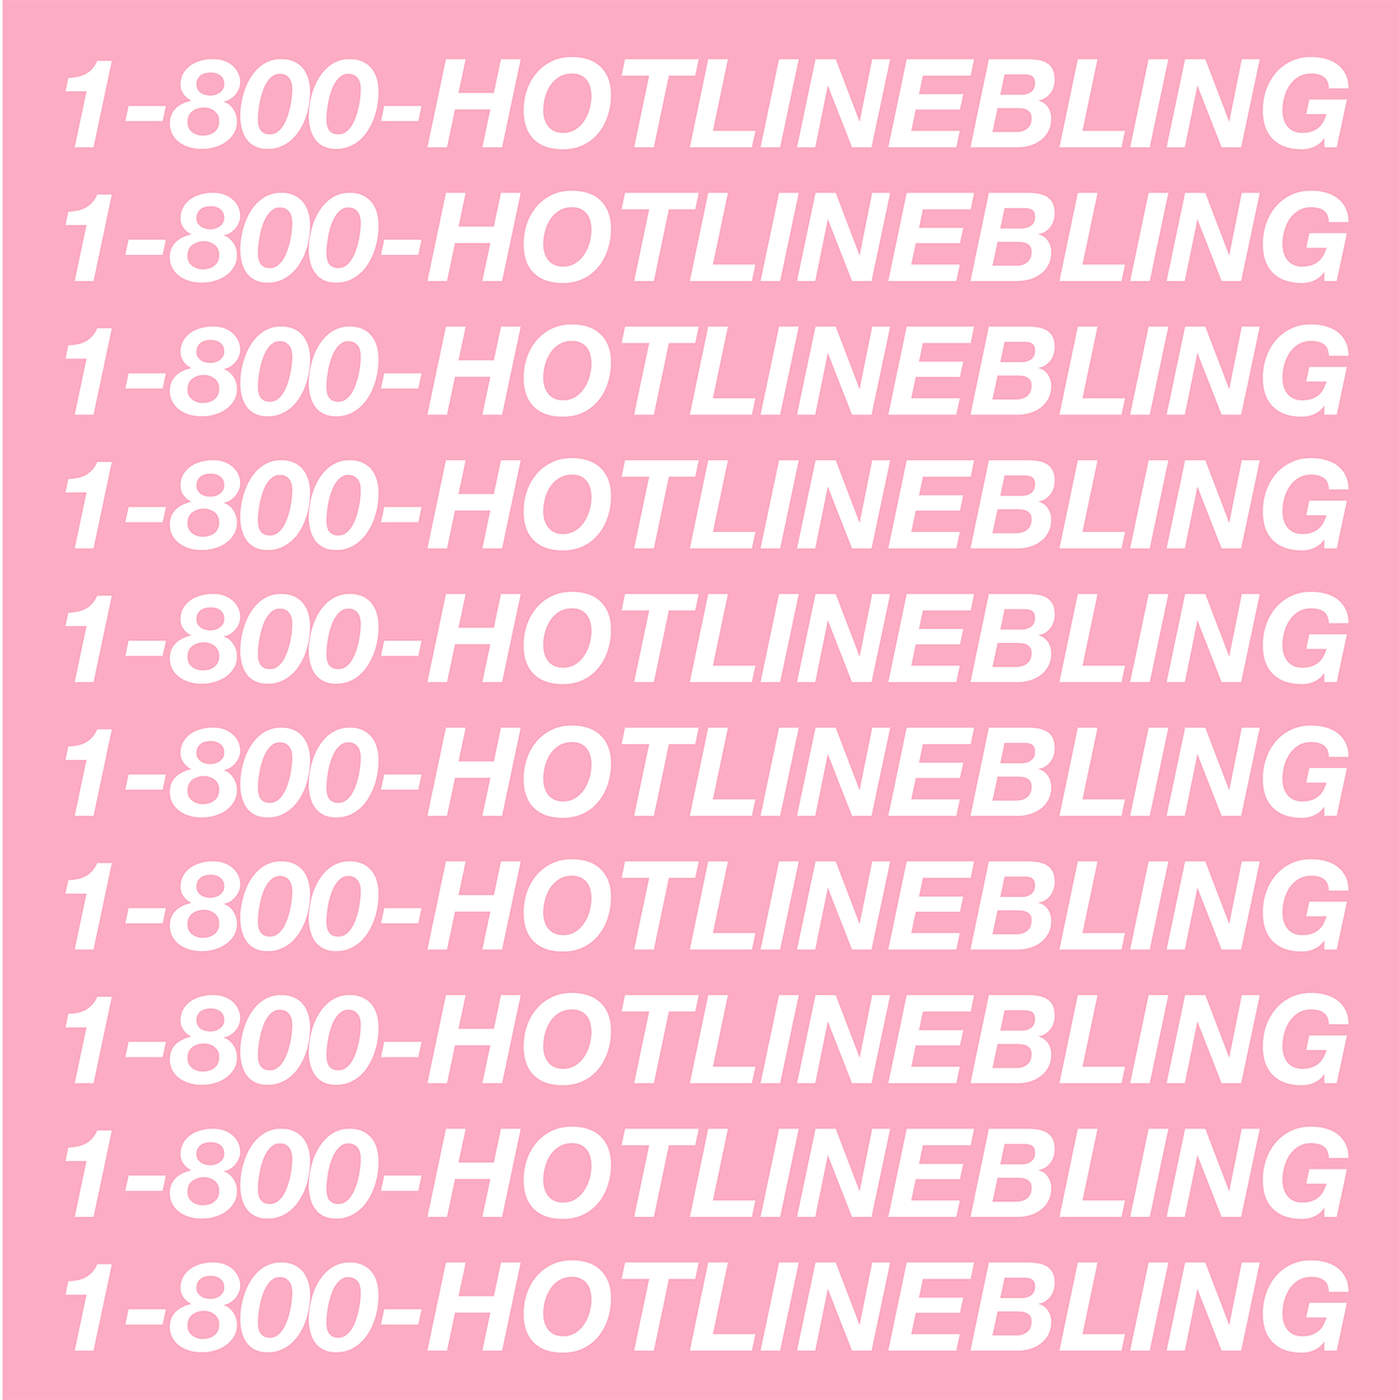 Hotline Bling - Wikipedia